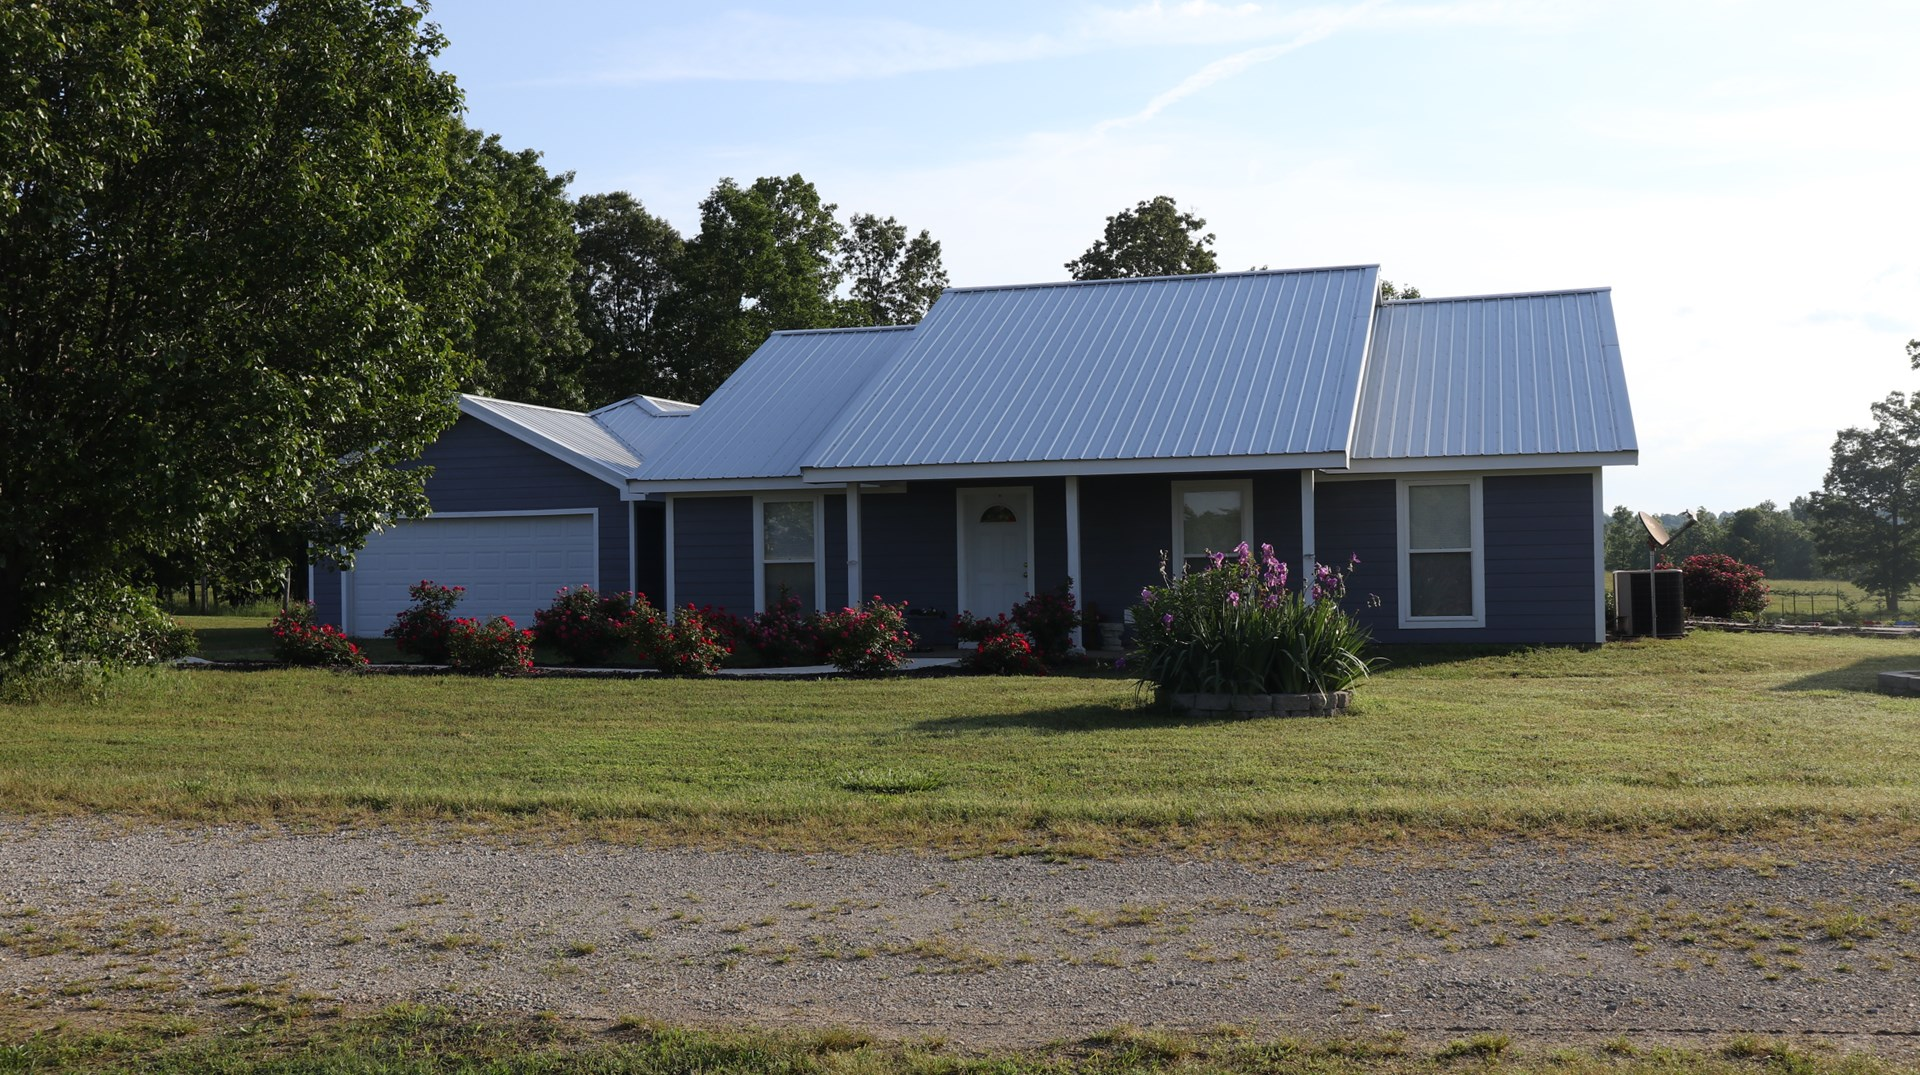 Ozarks Country Home & Farm for Sale Near Salem Arkansas